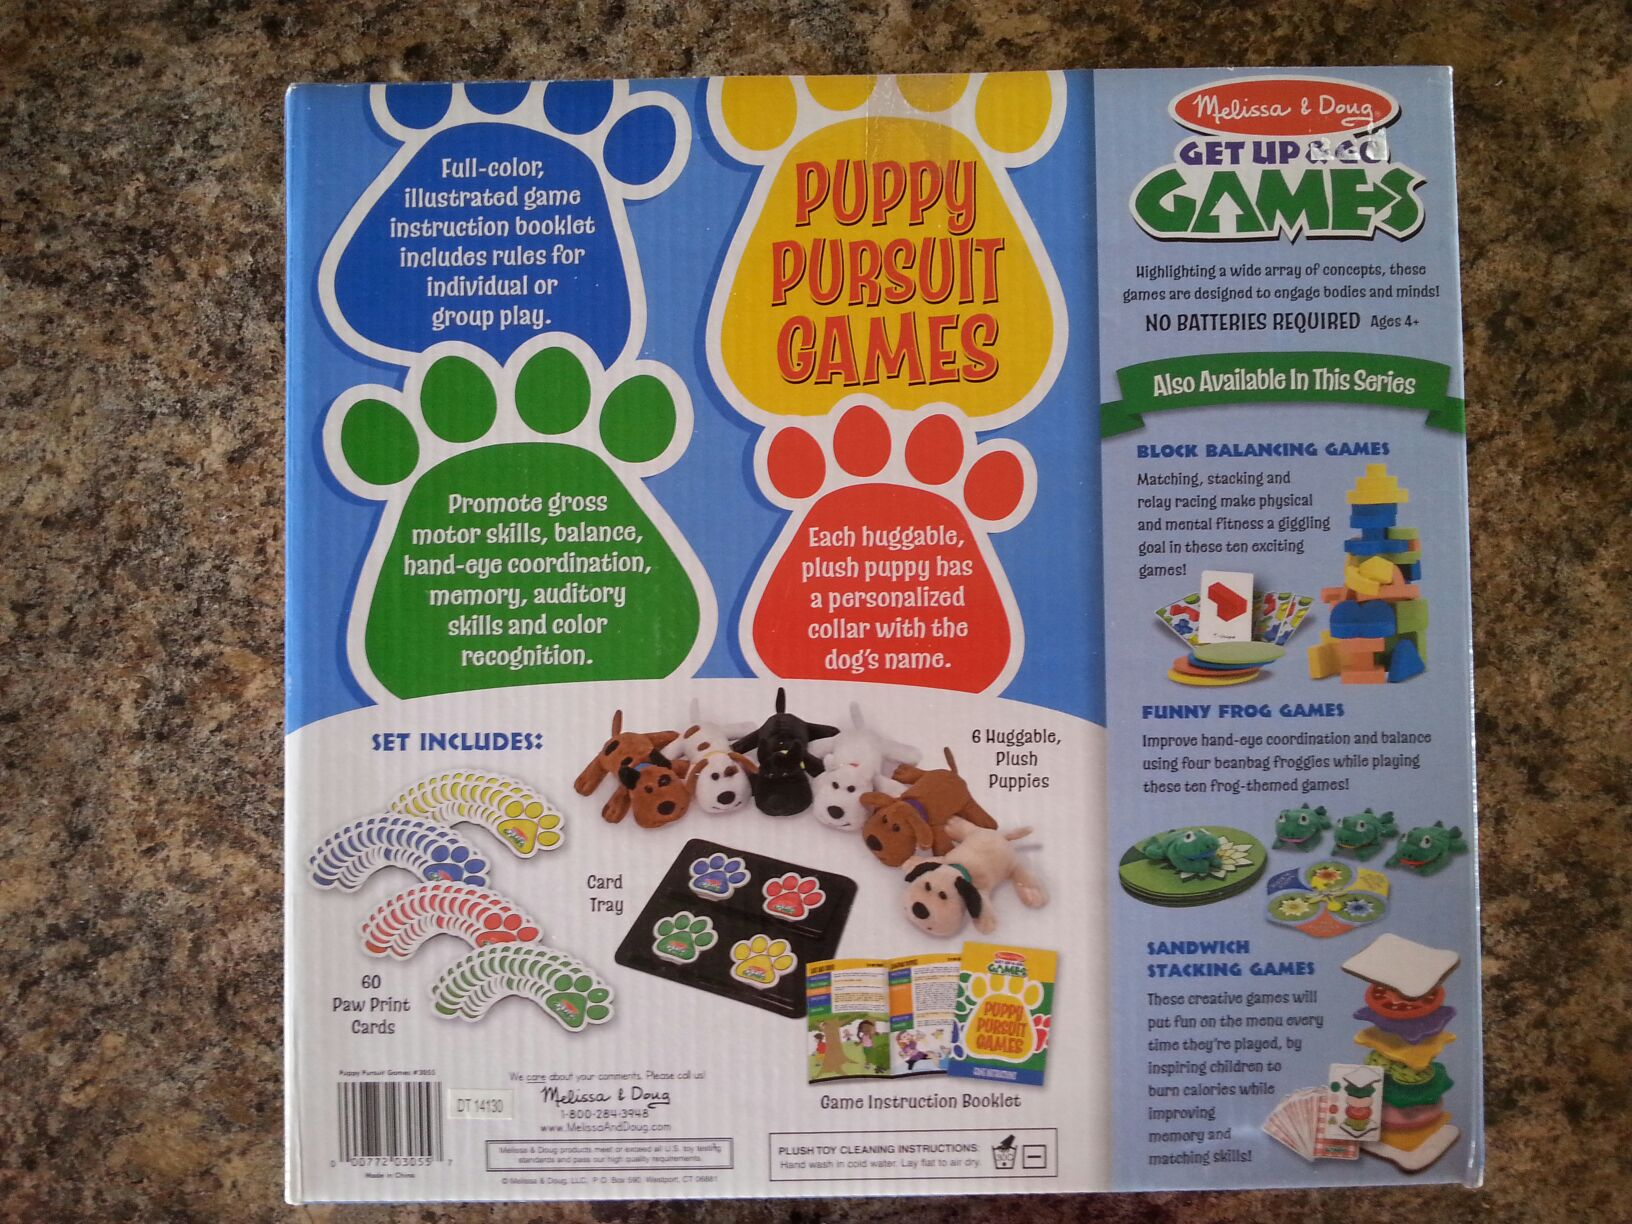 Puppy Pursuit Board Game - Melissa and Doug back image (back cover, second image)